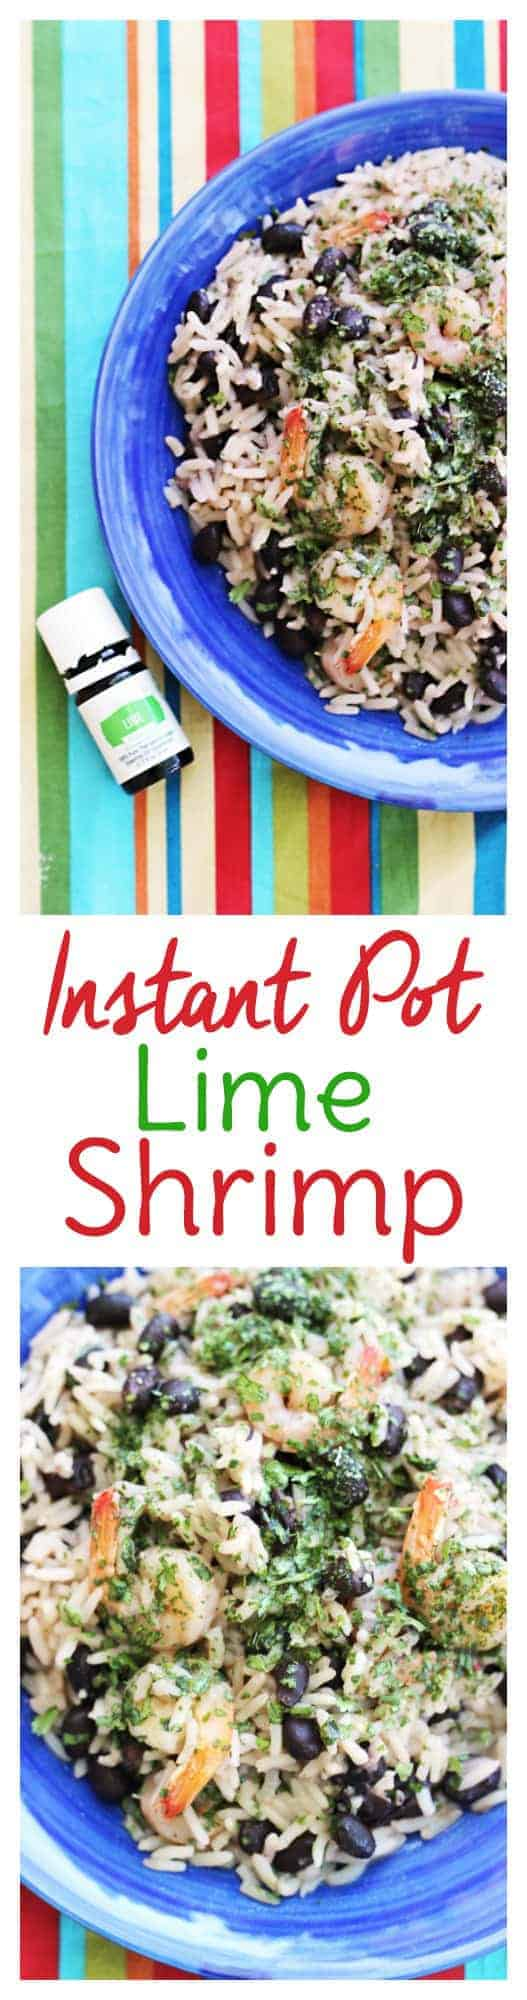 Instant Pot Lime Shrimp